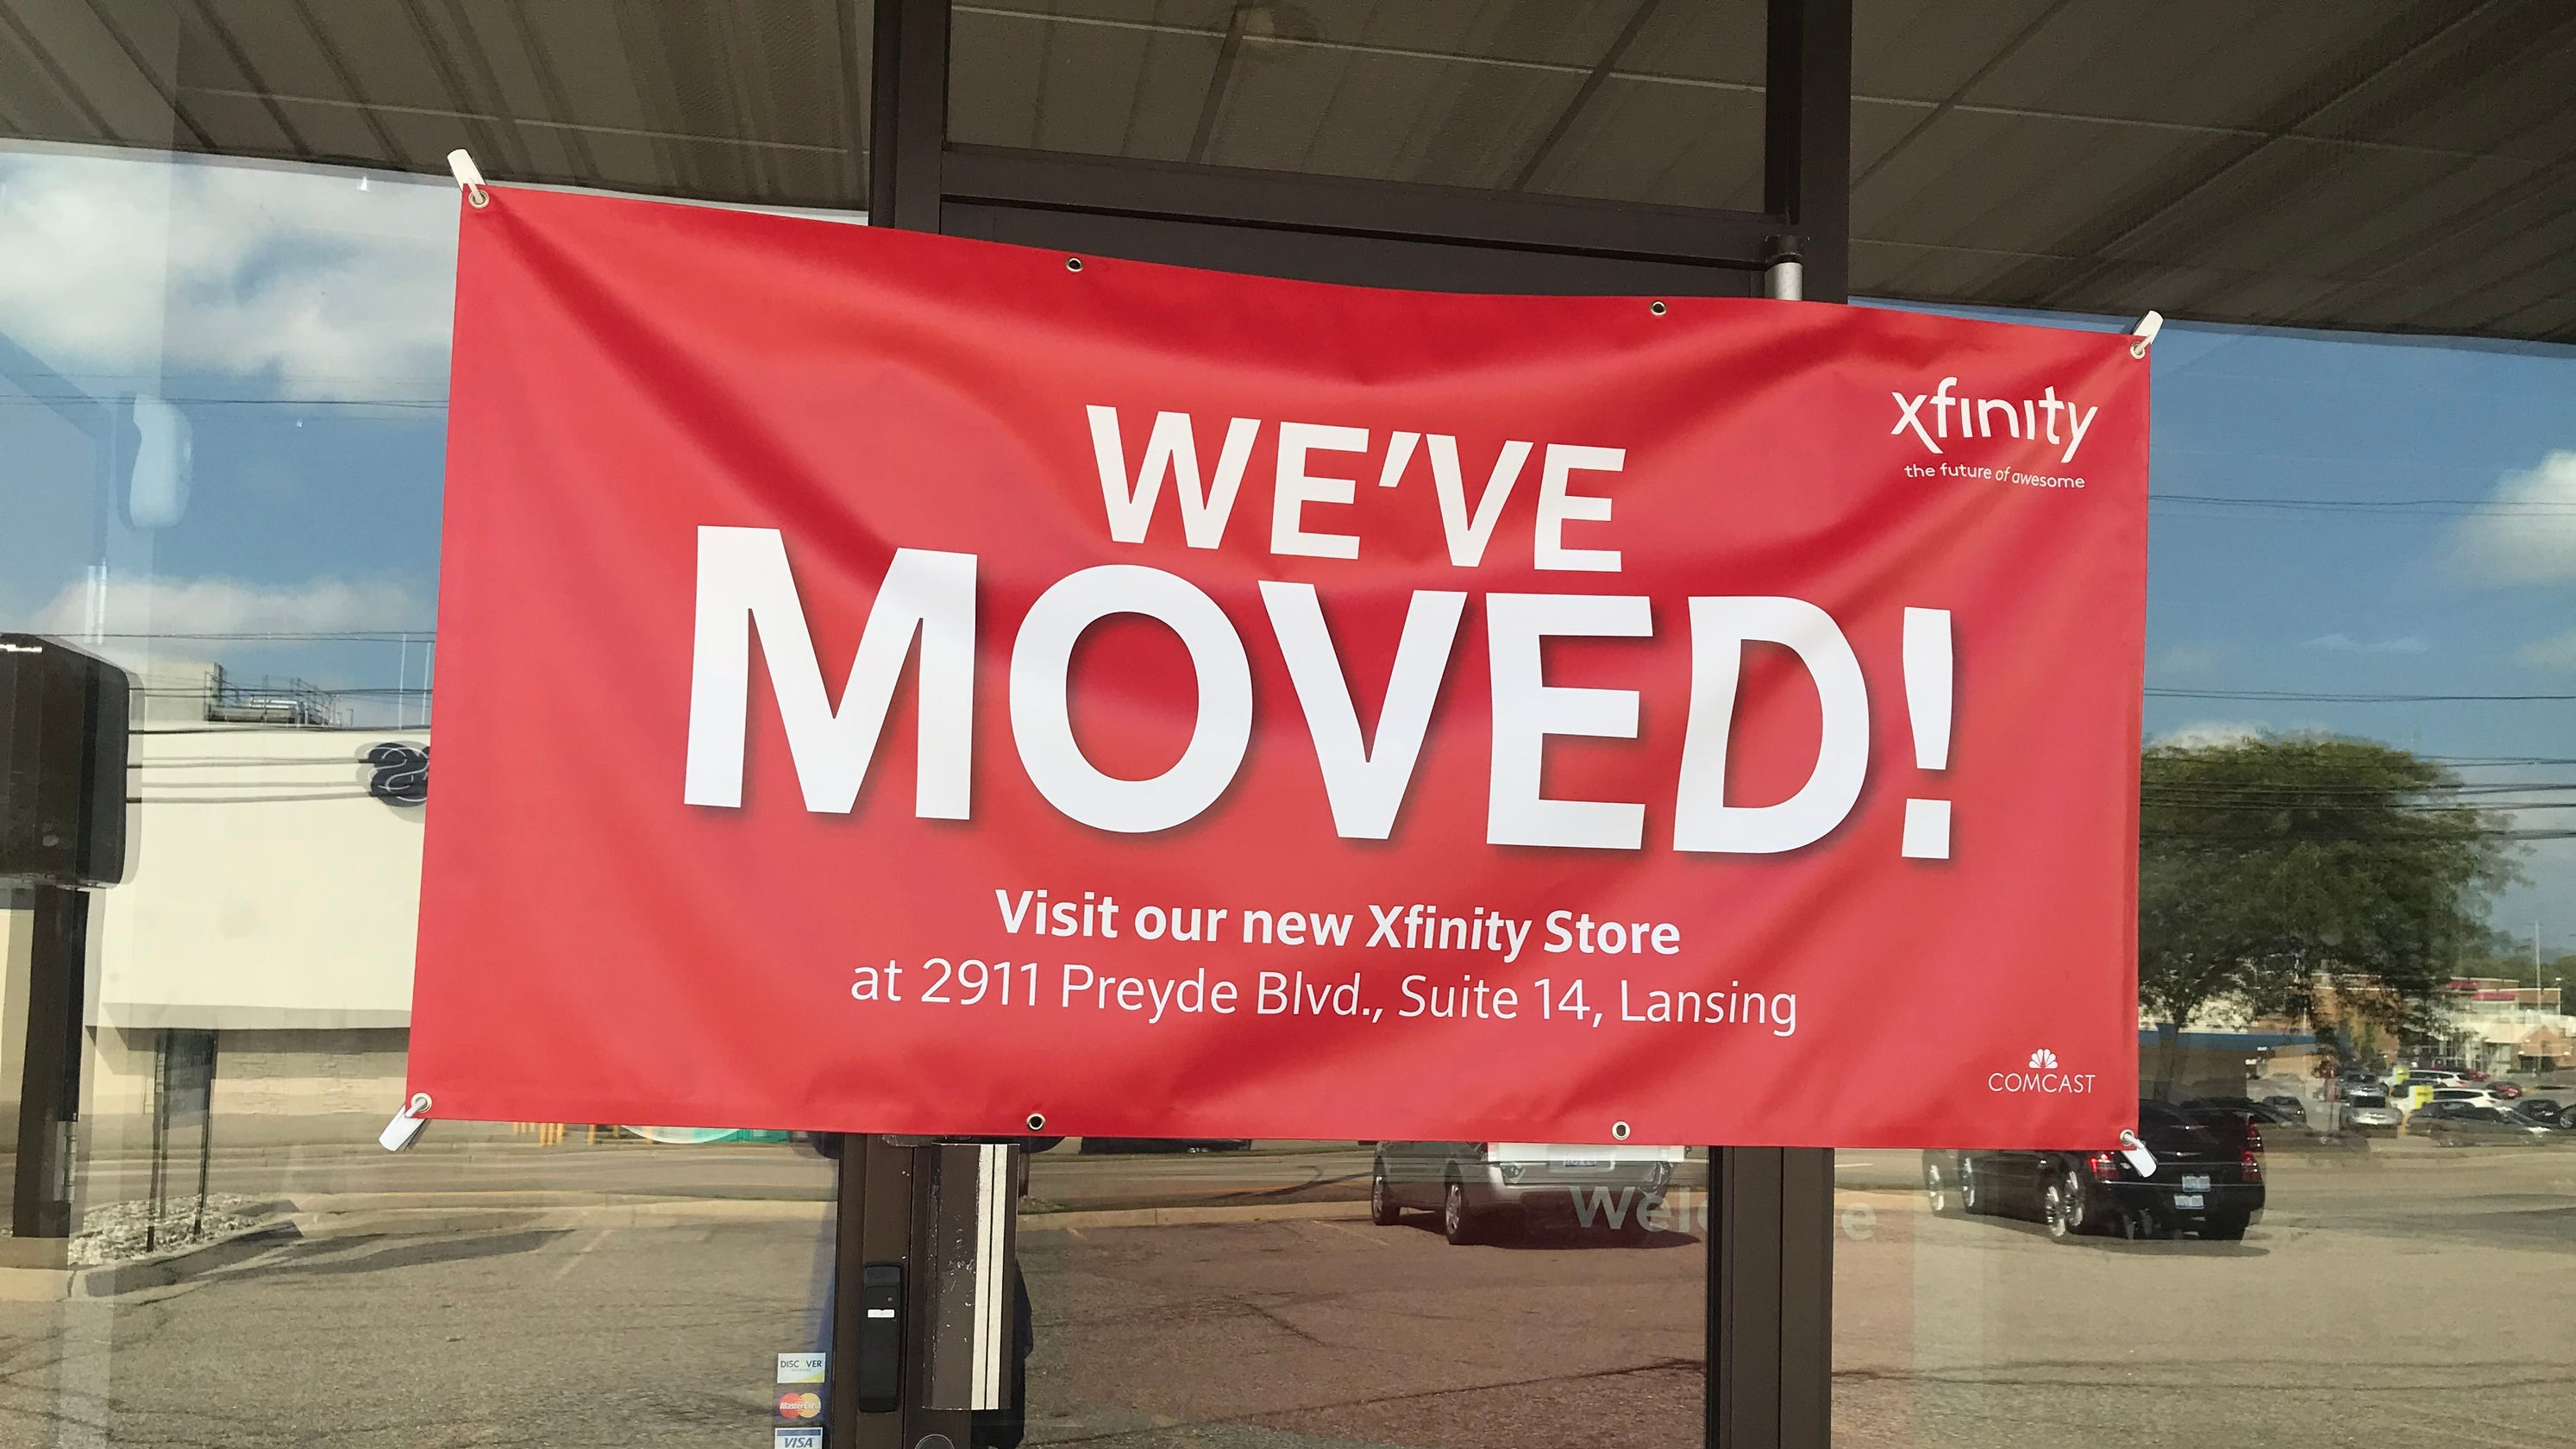 . Comcast soft launch of new Xfinity store at Eastwood a little too soft